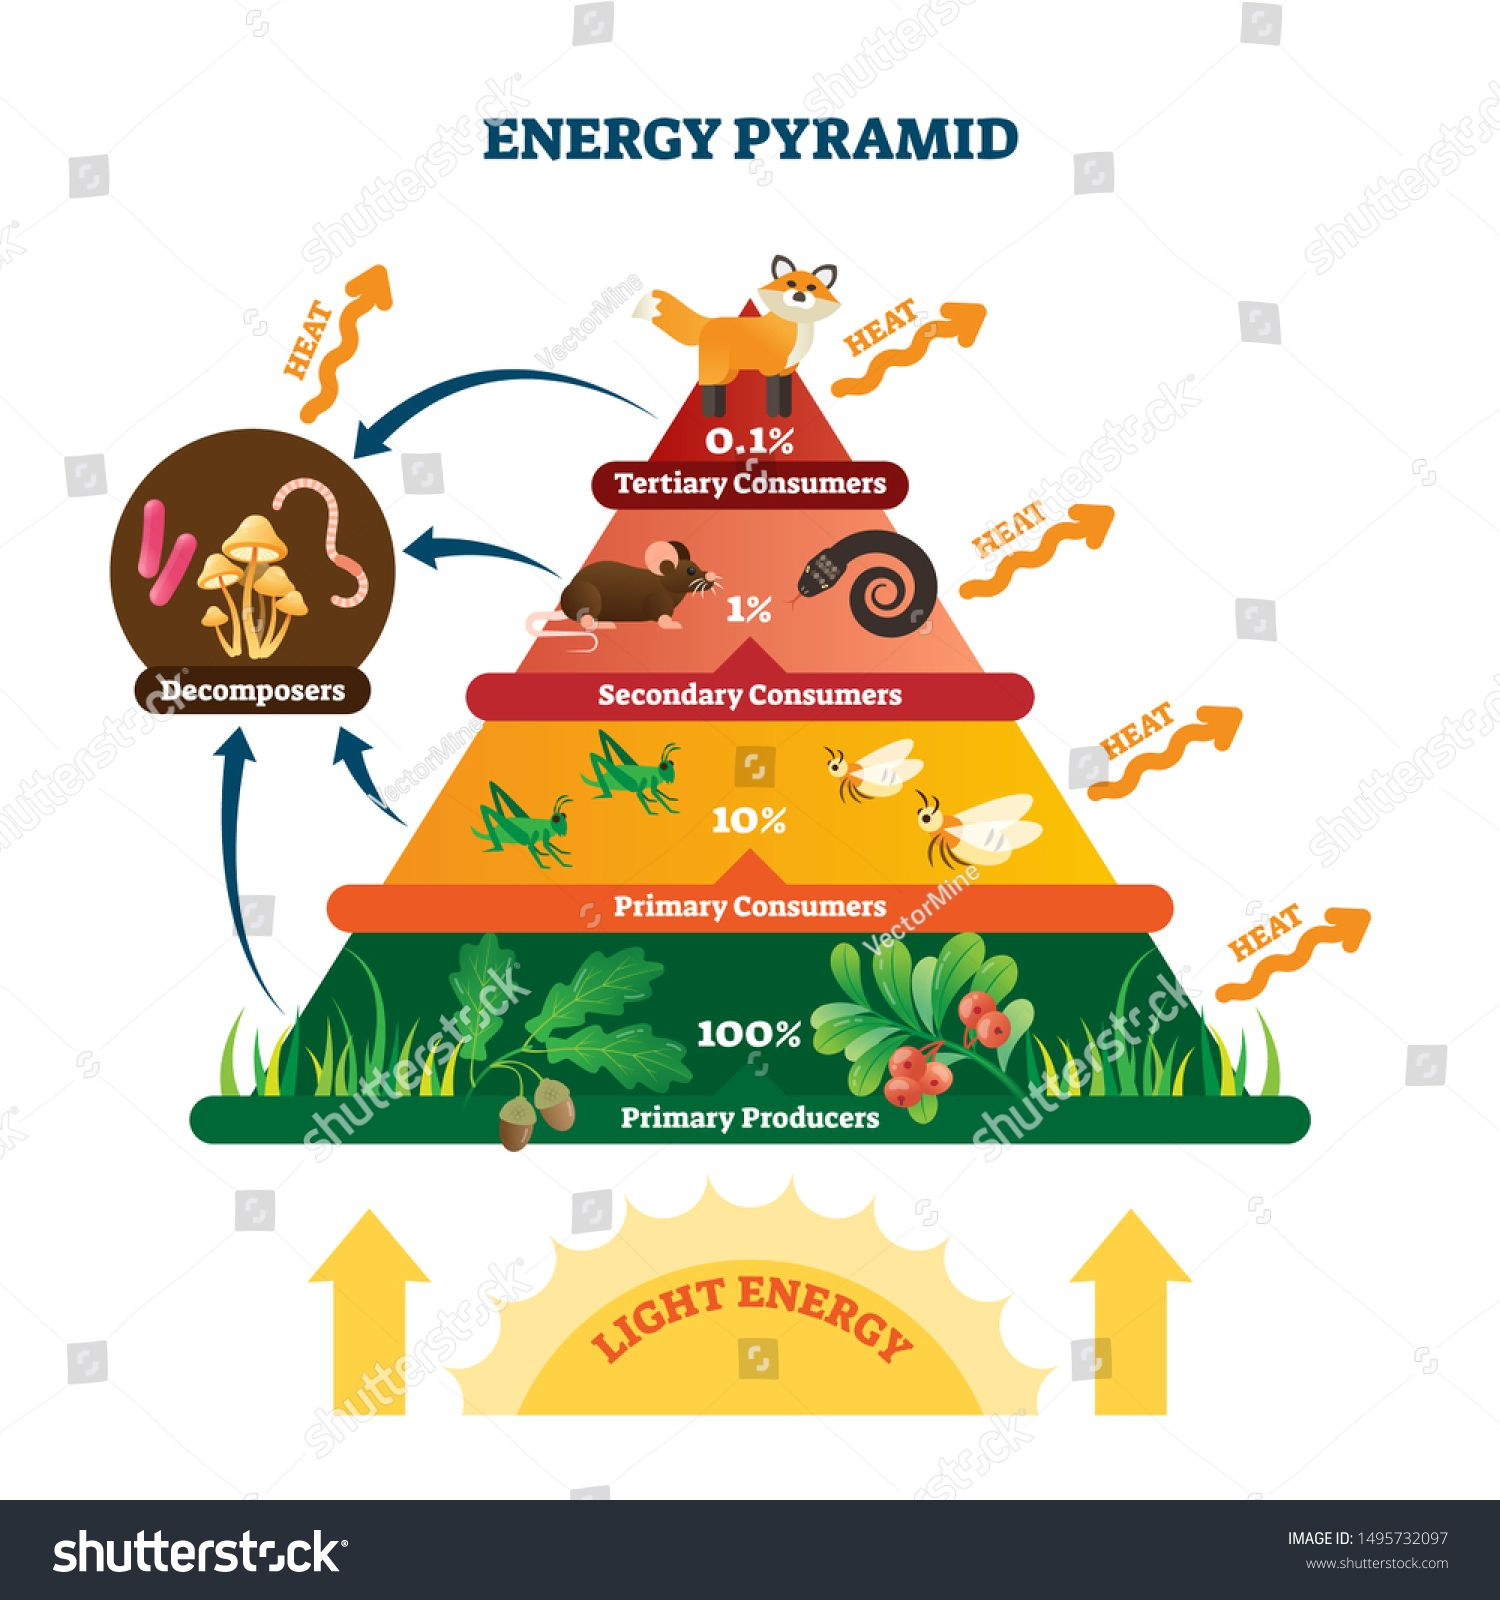 Energy Pyramid Vector Illustration Labeled Biomass Representation Graphic Educational Bioproductivity L Energy Pyramid Ecological Pyramid Science Food Chains